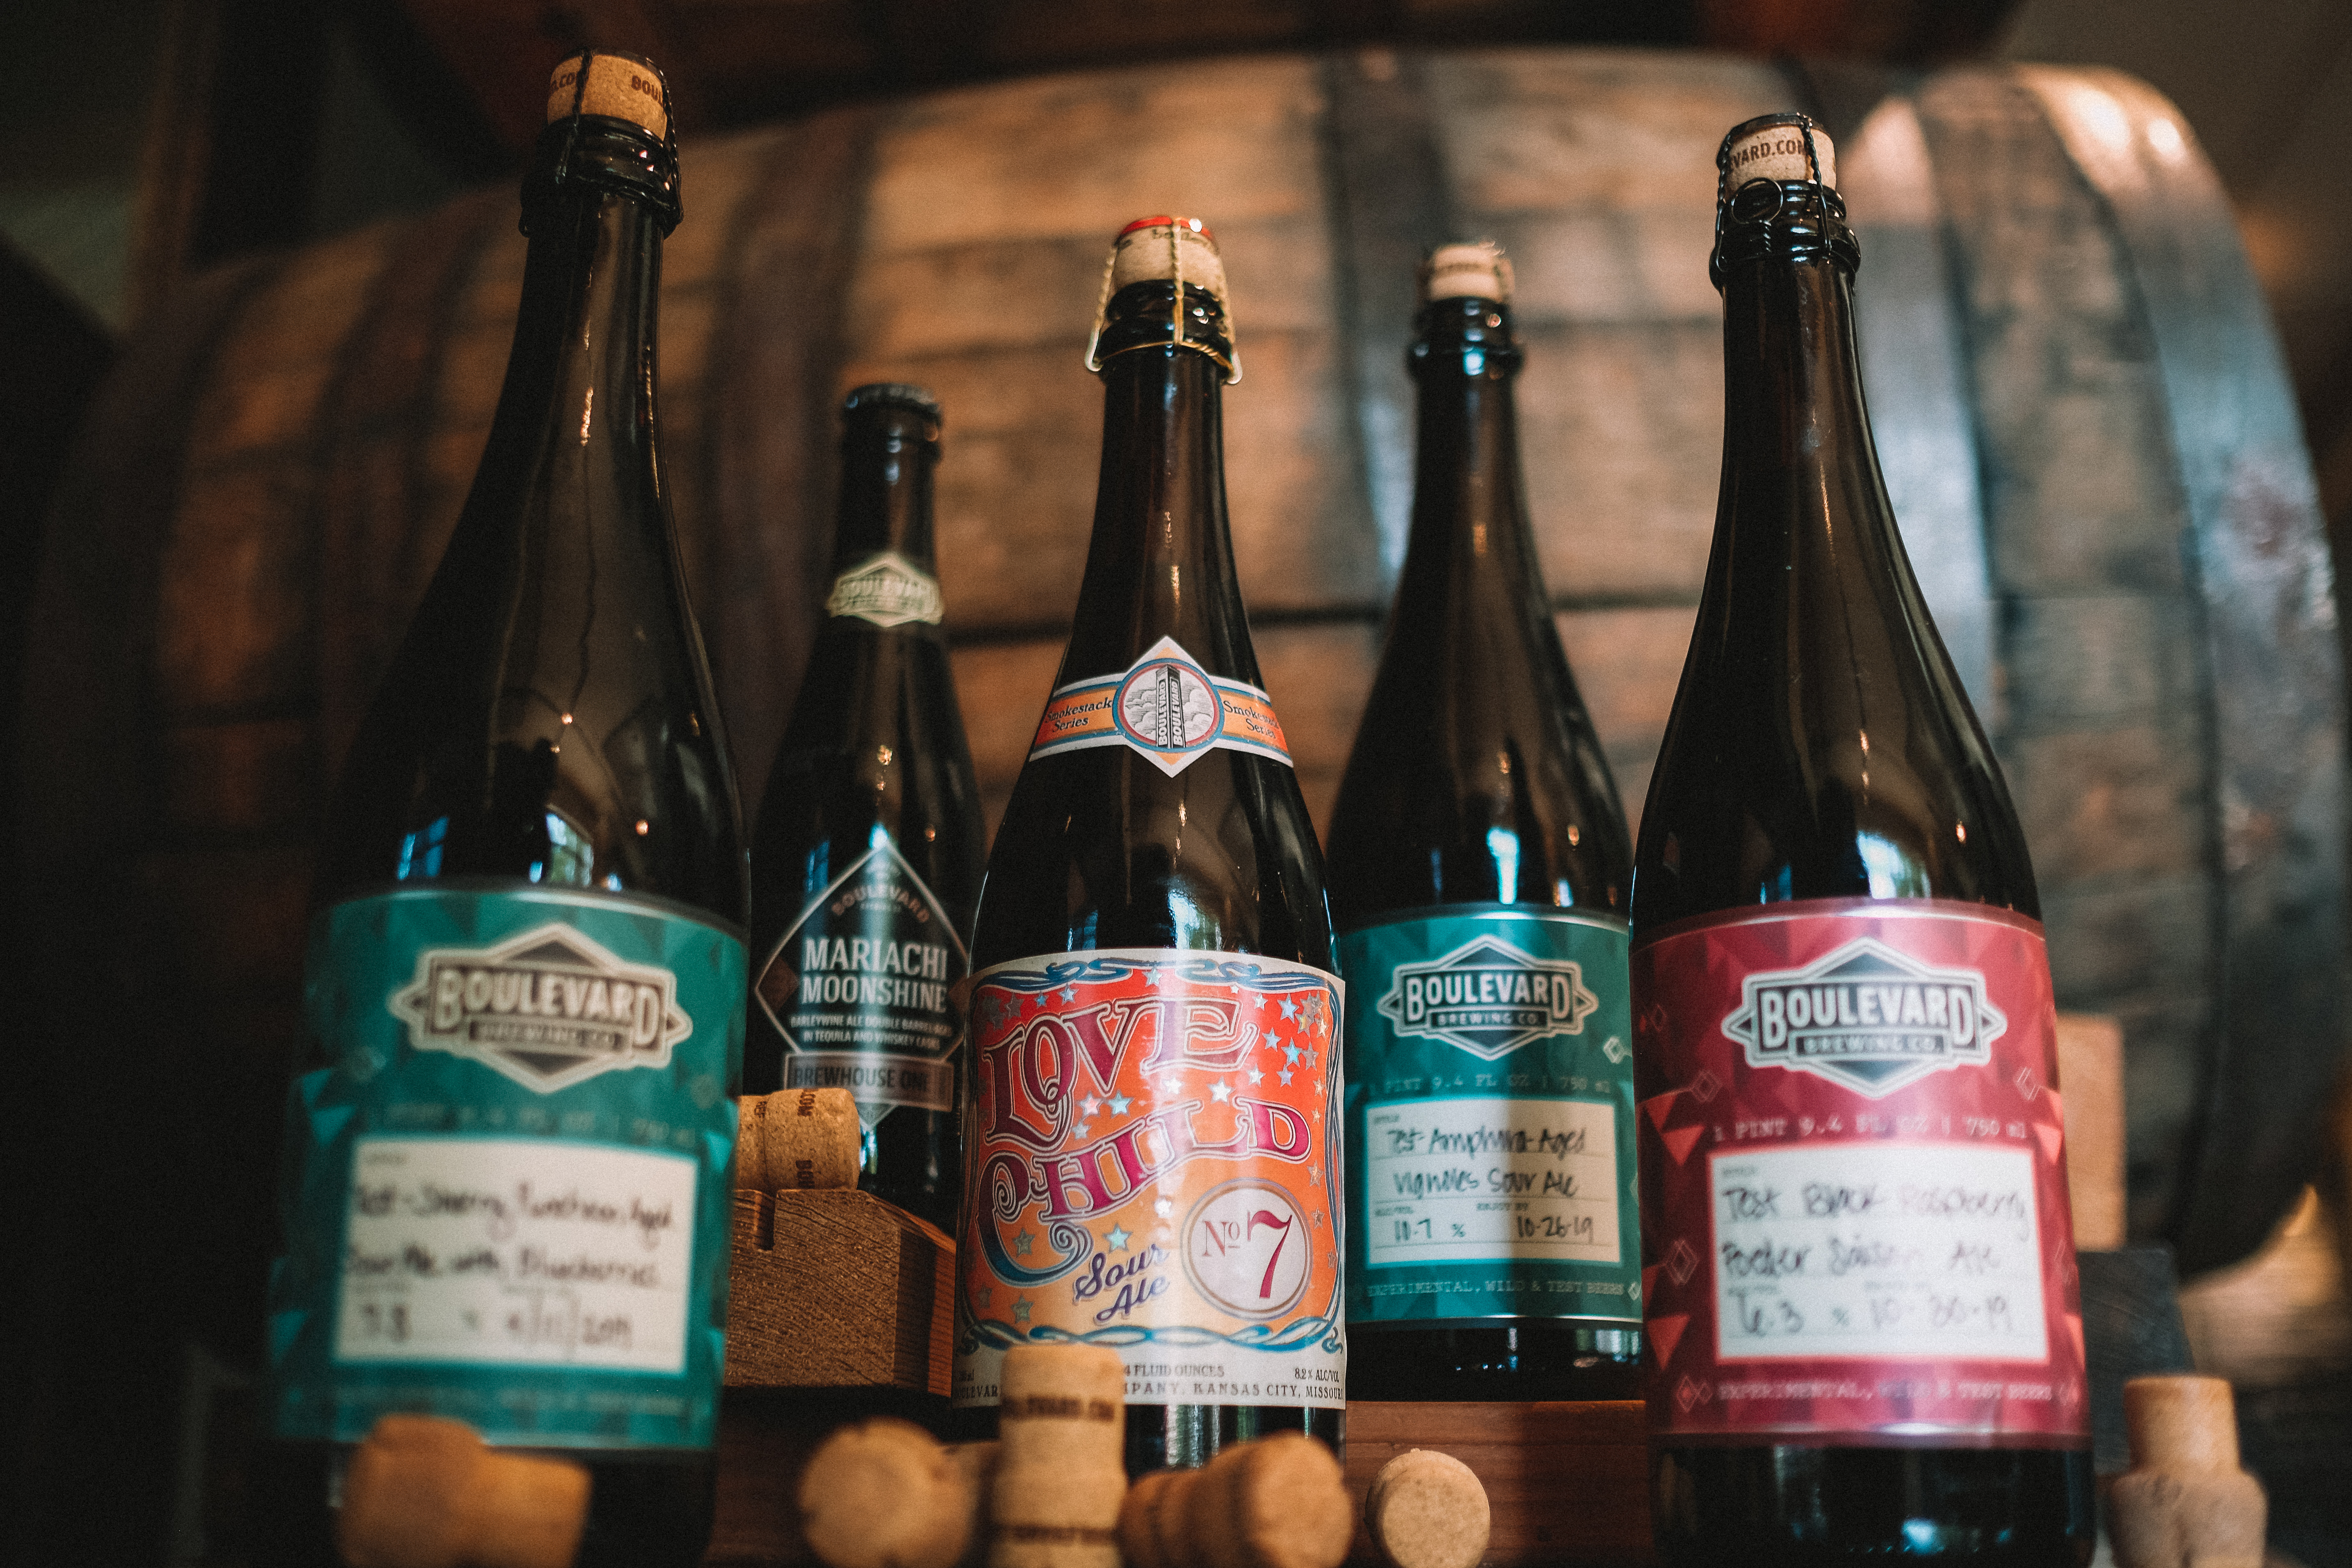 Collection of Boulevard Sour Beers in front of whiskey barrels